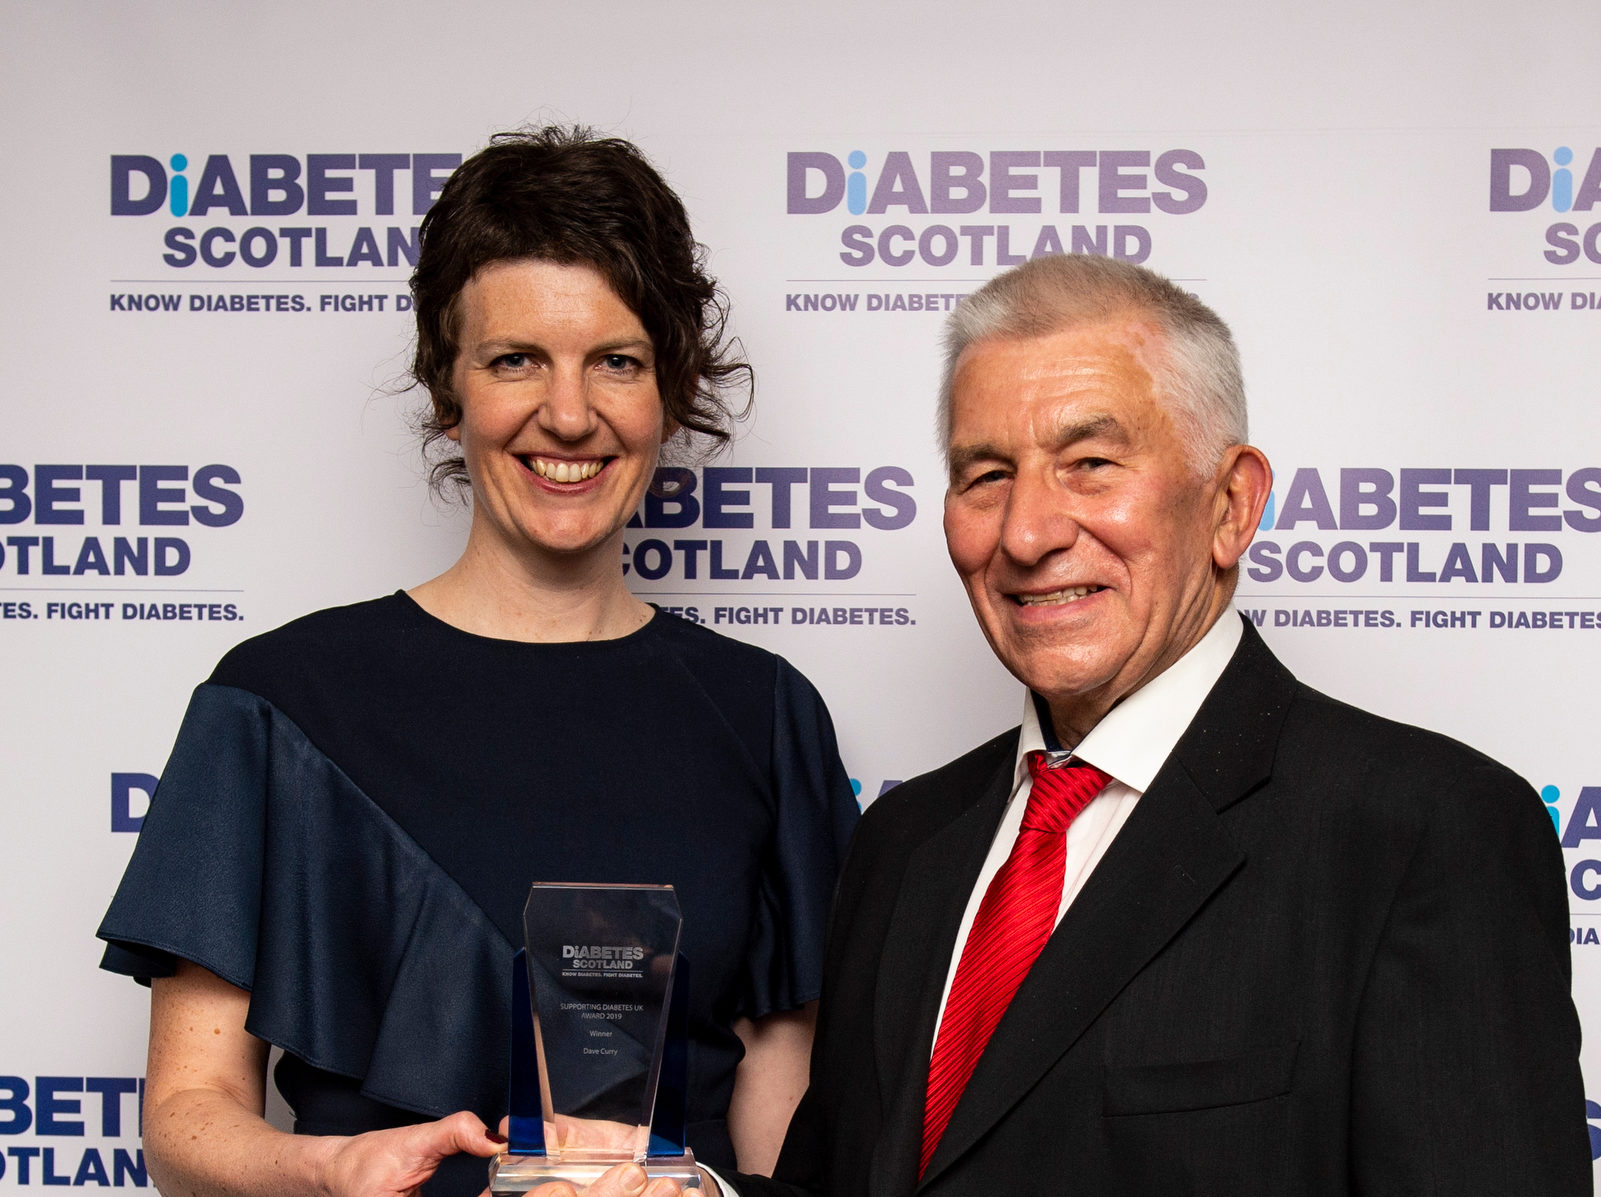 Dave Curry with Diabetes Scotland National Director, Angela Mitchell.